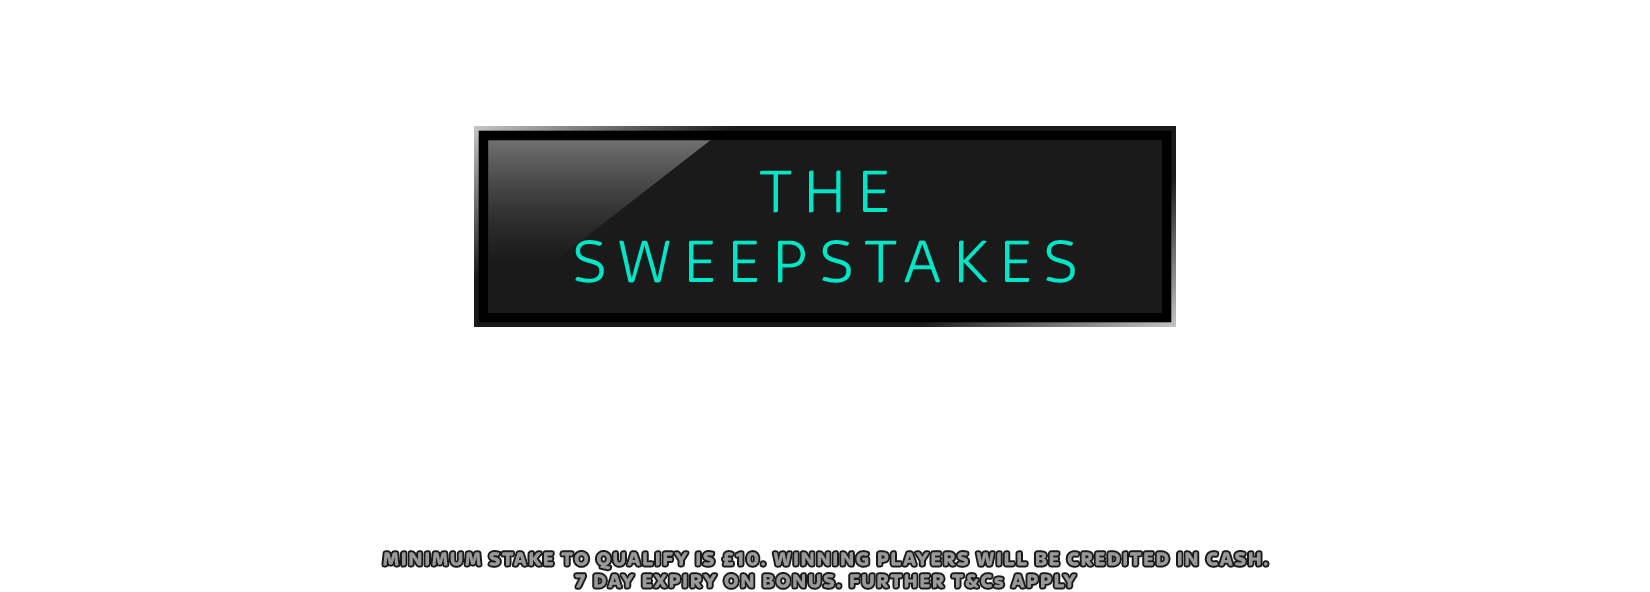 C.XS.The.Sweepstakes.Wimbledon